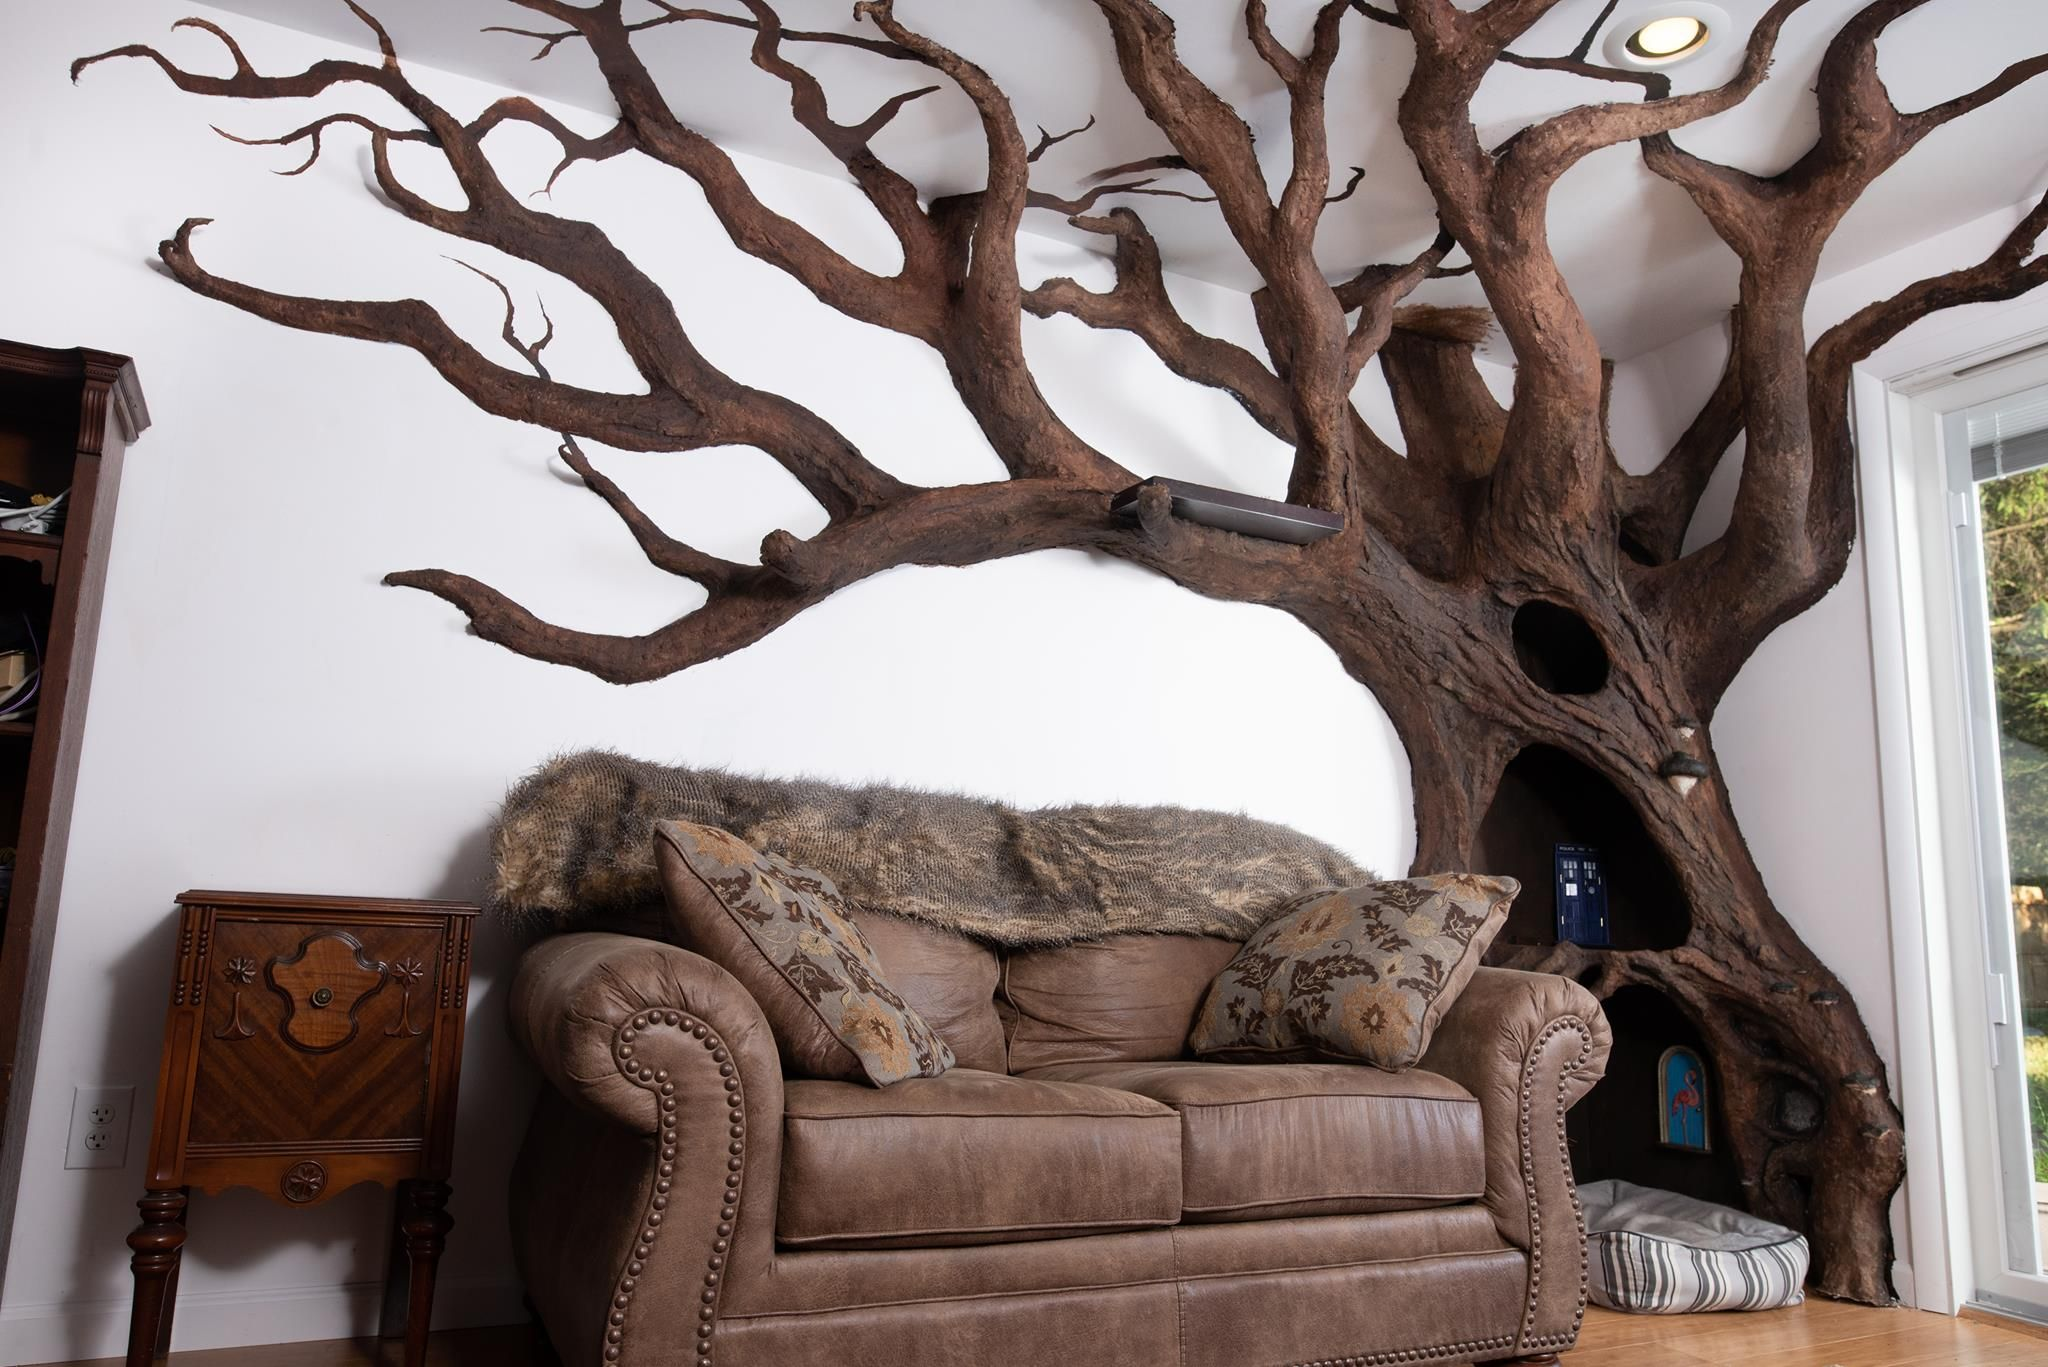 Pin By Irene C On Dream Home Ideas Custom Cat Trees Tree Sculpture Cat Tree